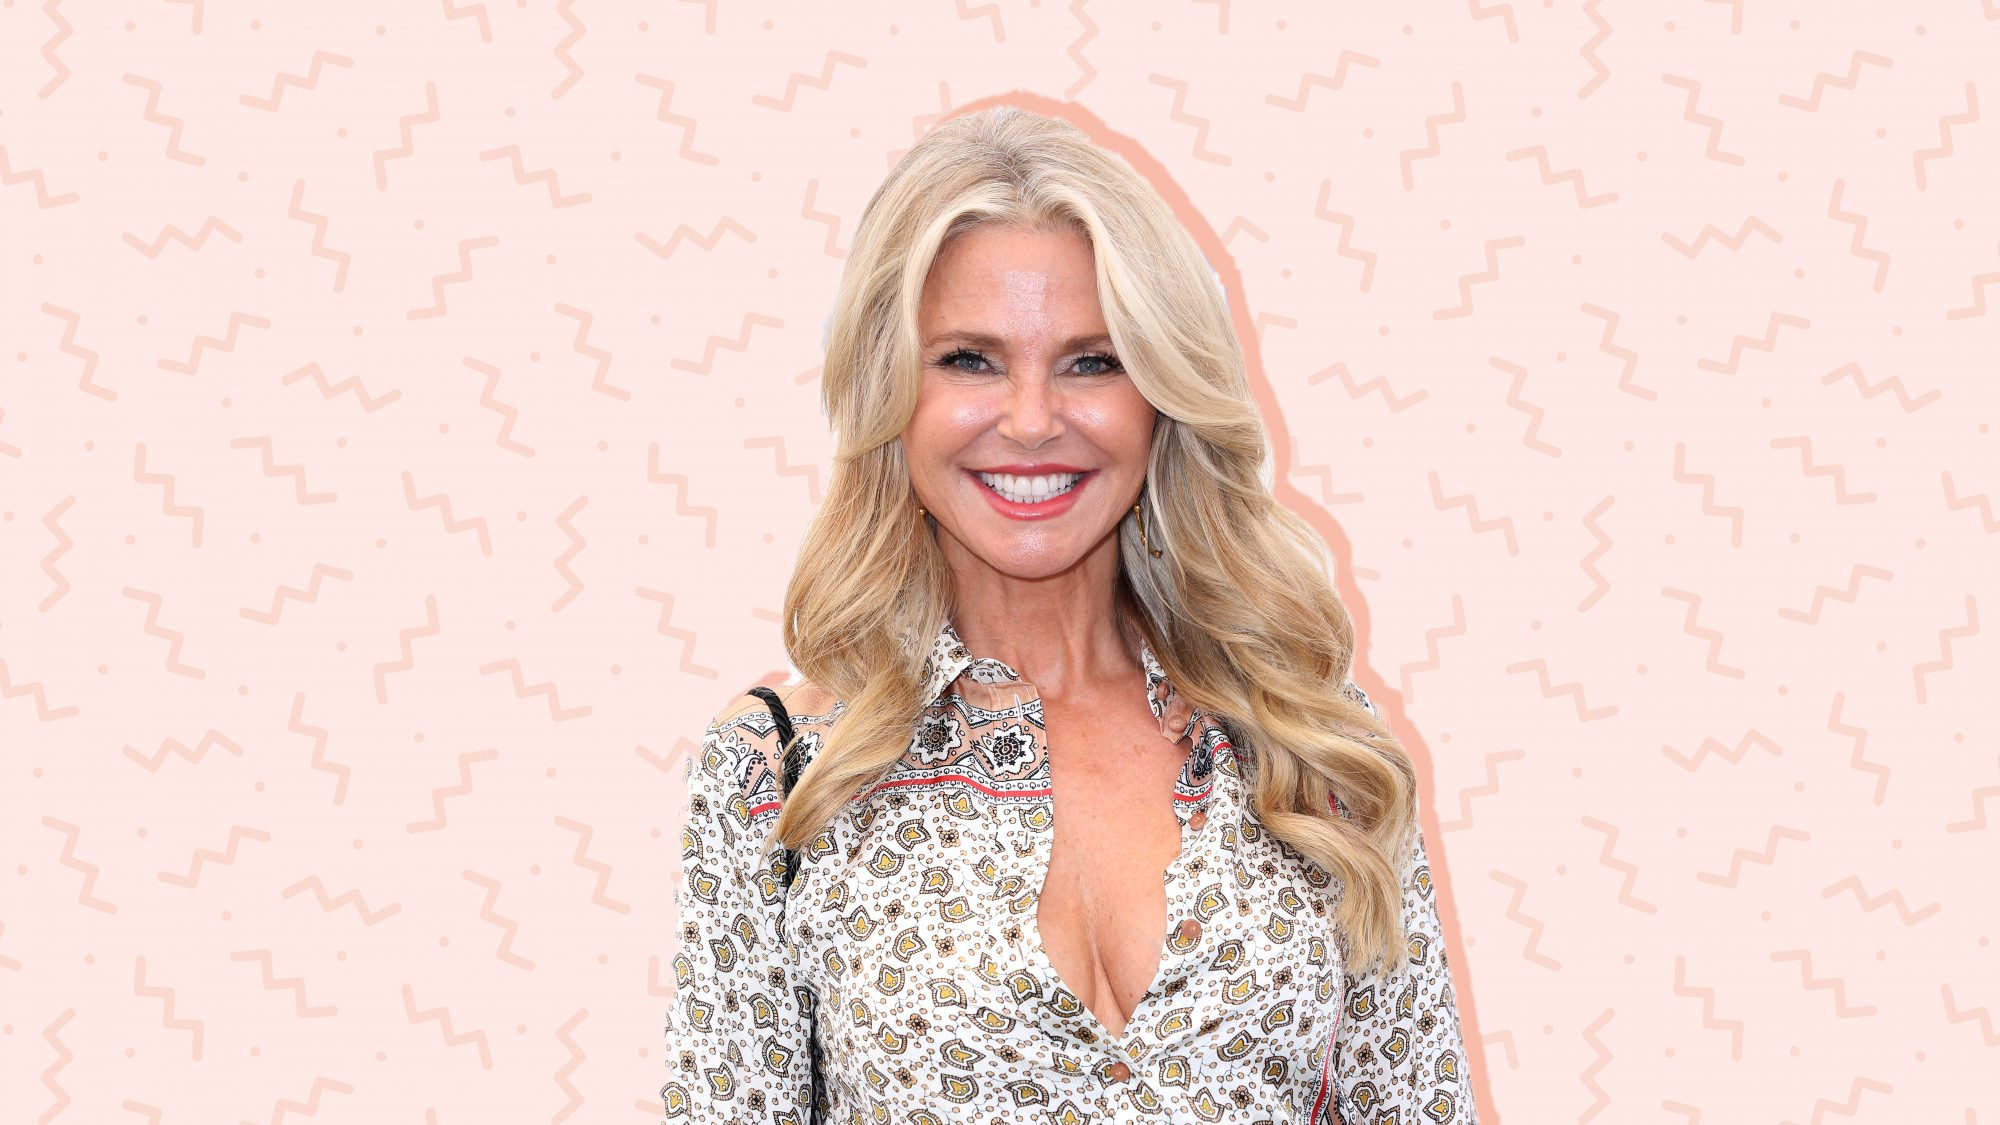 Christie Brinkley Sobs as She Reveals Her Arm 'Shattered Into a Thousand Little Pieces' in DWTS Fall